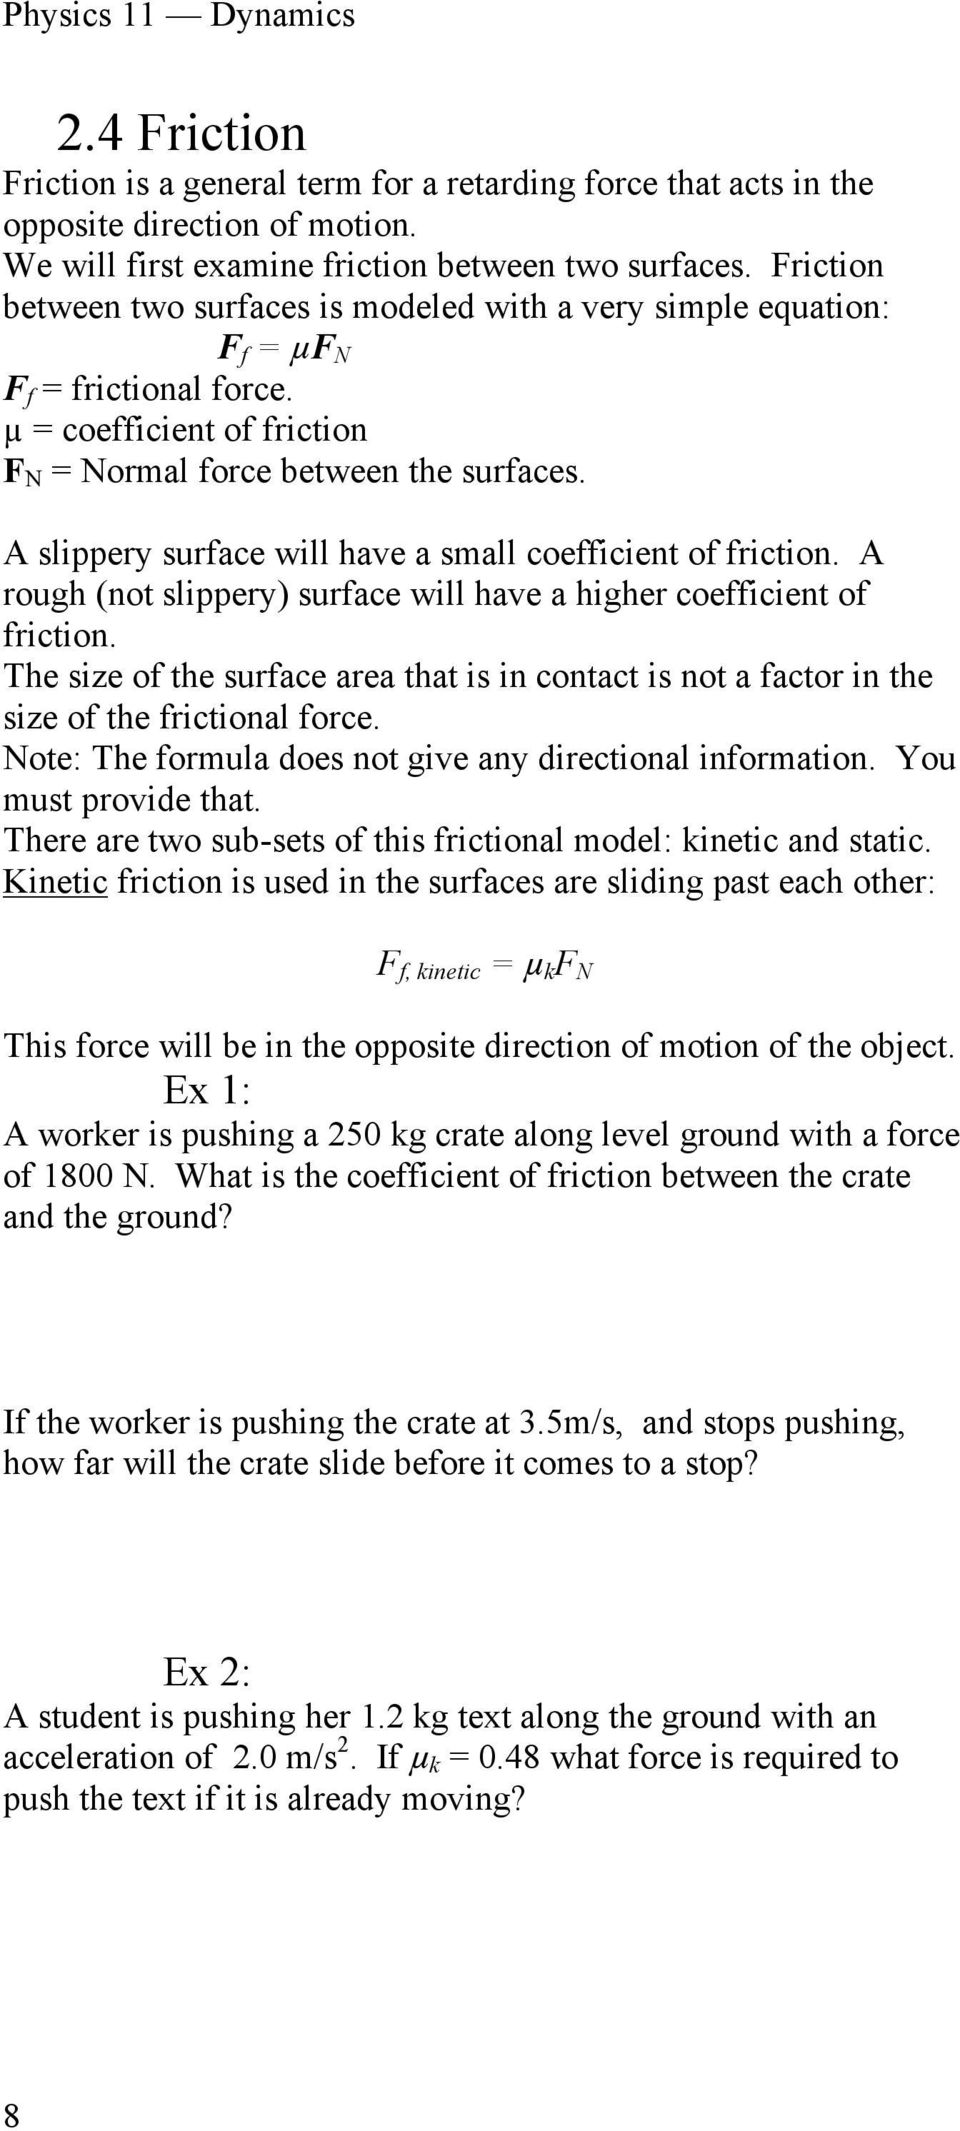 A slippery surface will have a small coefficient of friction. A rough (not slippery) surface will have a higher coefficient of friction.